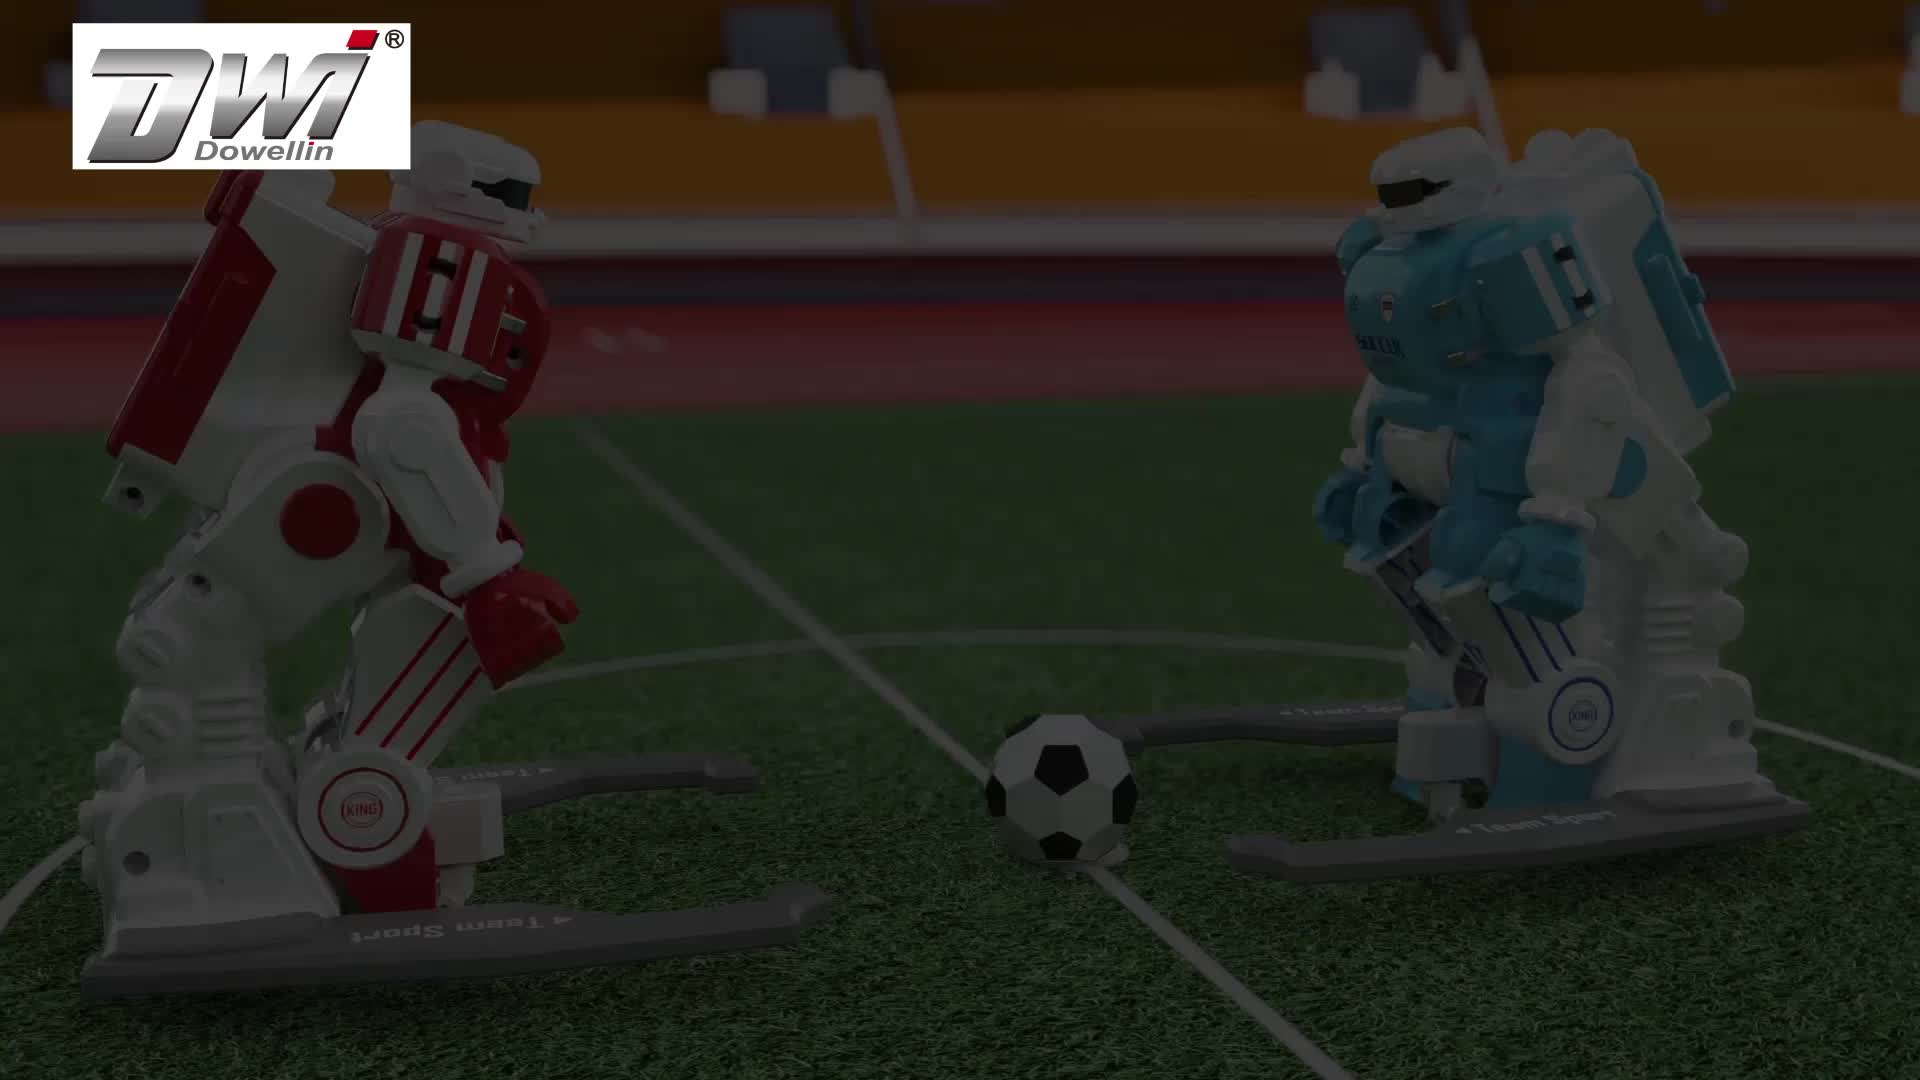 DWI dowellin Innovative Smart Funny Intelligent Football Toy Humanoid Robot For Kids